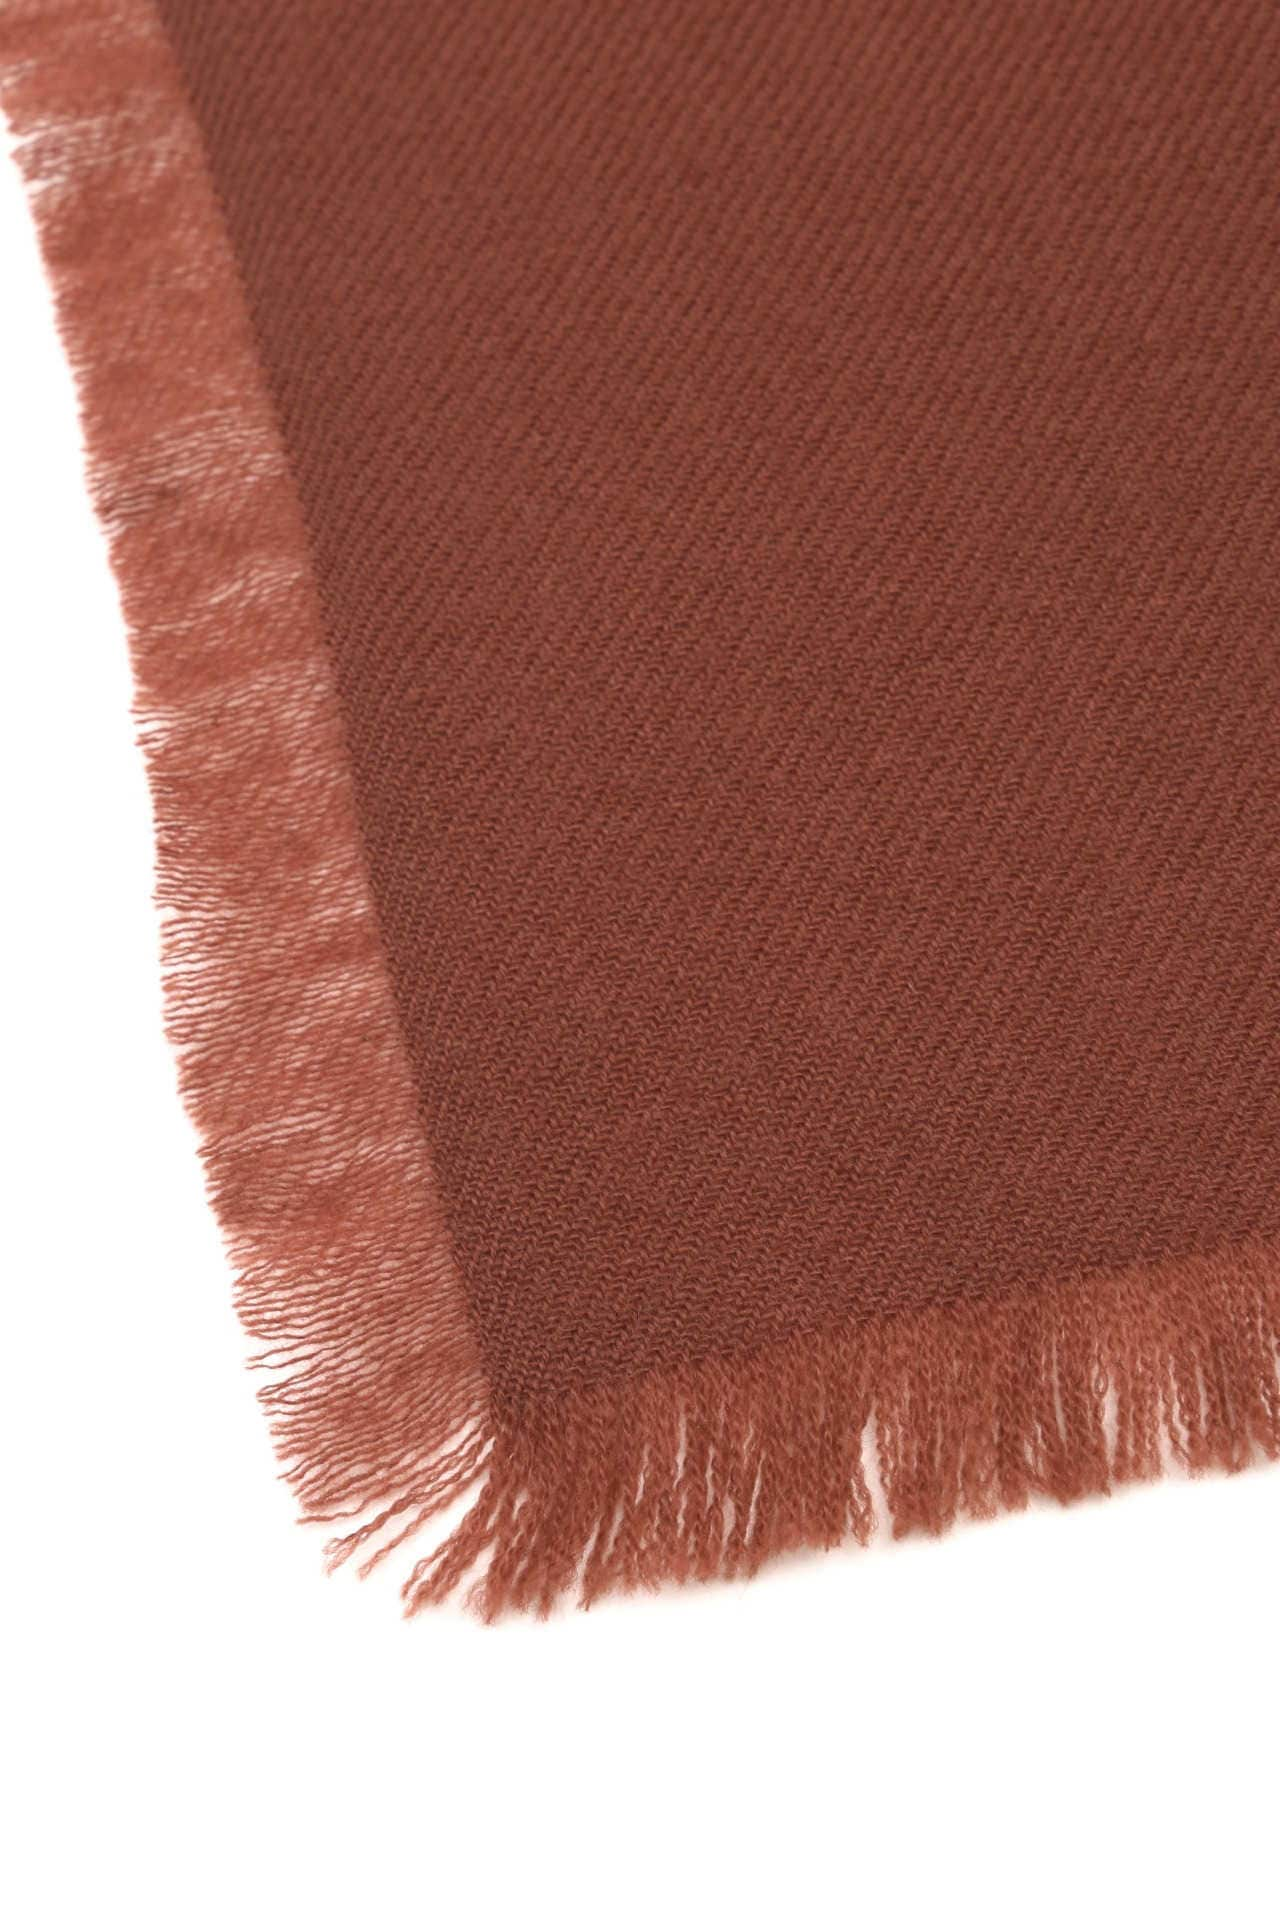 WOOL CASHMERE THROW3